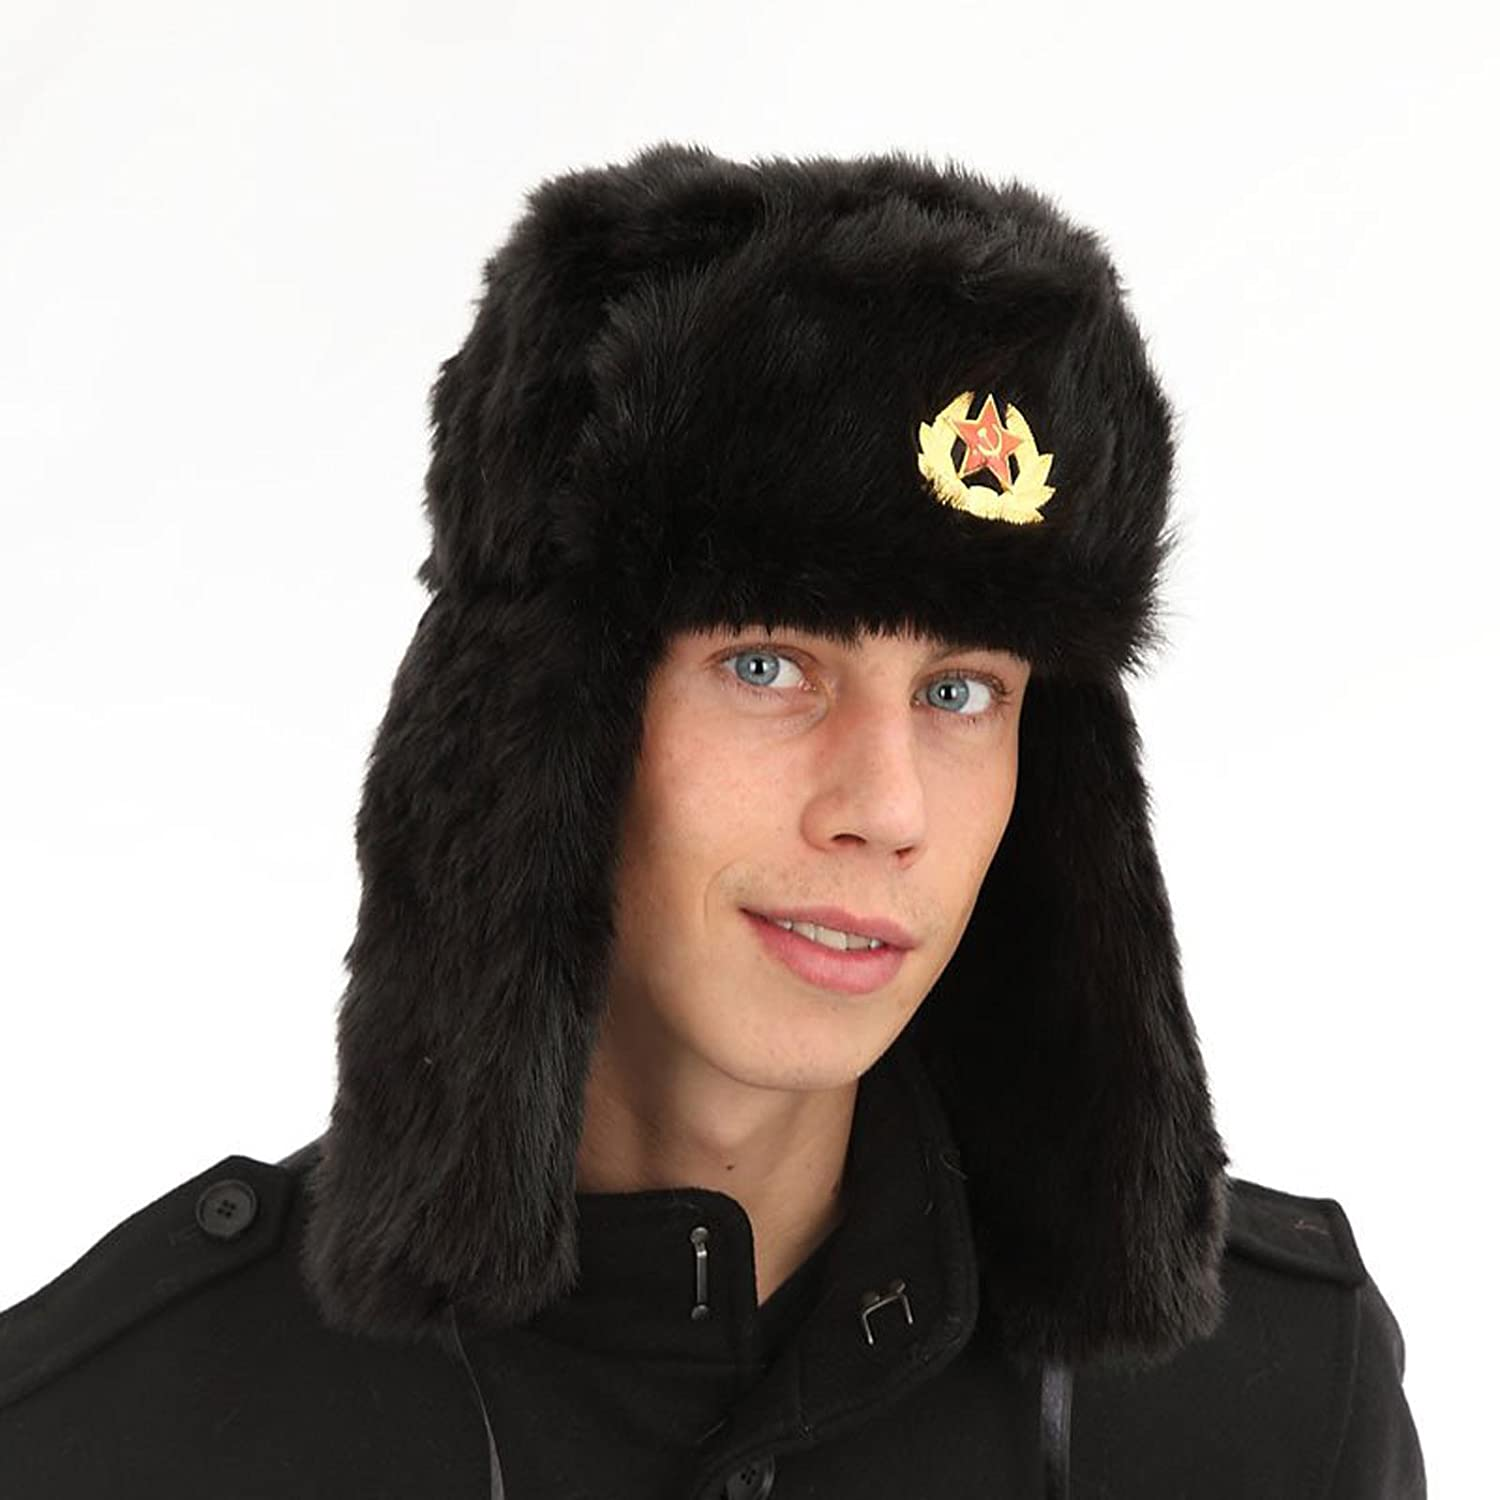 Black Faux Fur Russian Ushanka Hat. 59cm Trapper hat removable soviet badge  Top Christmas gifts 2018 e1440f744f6